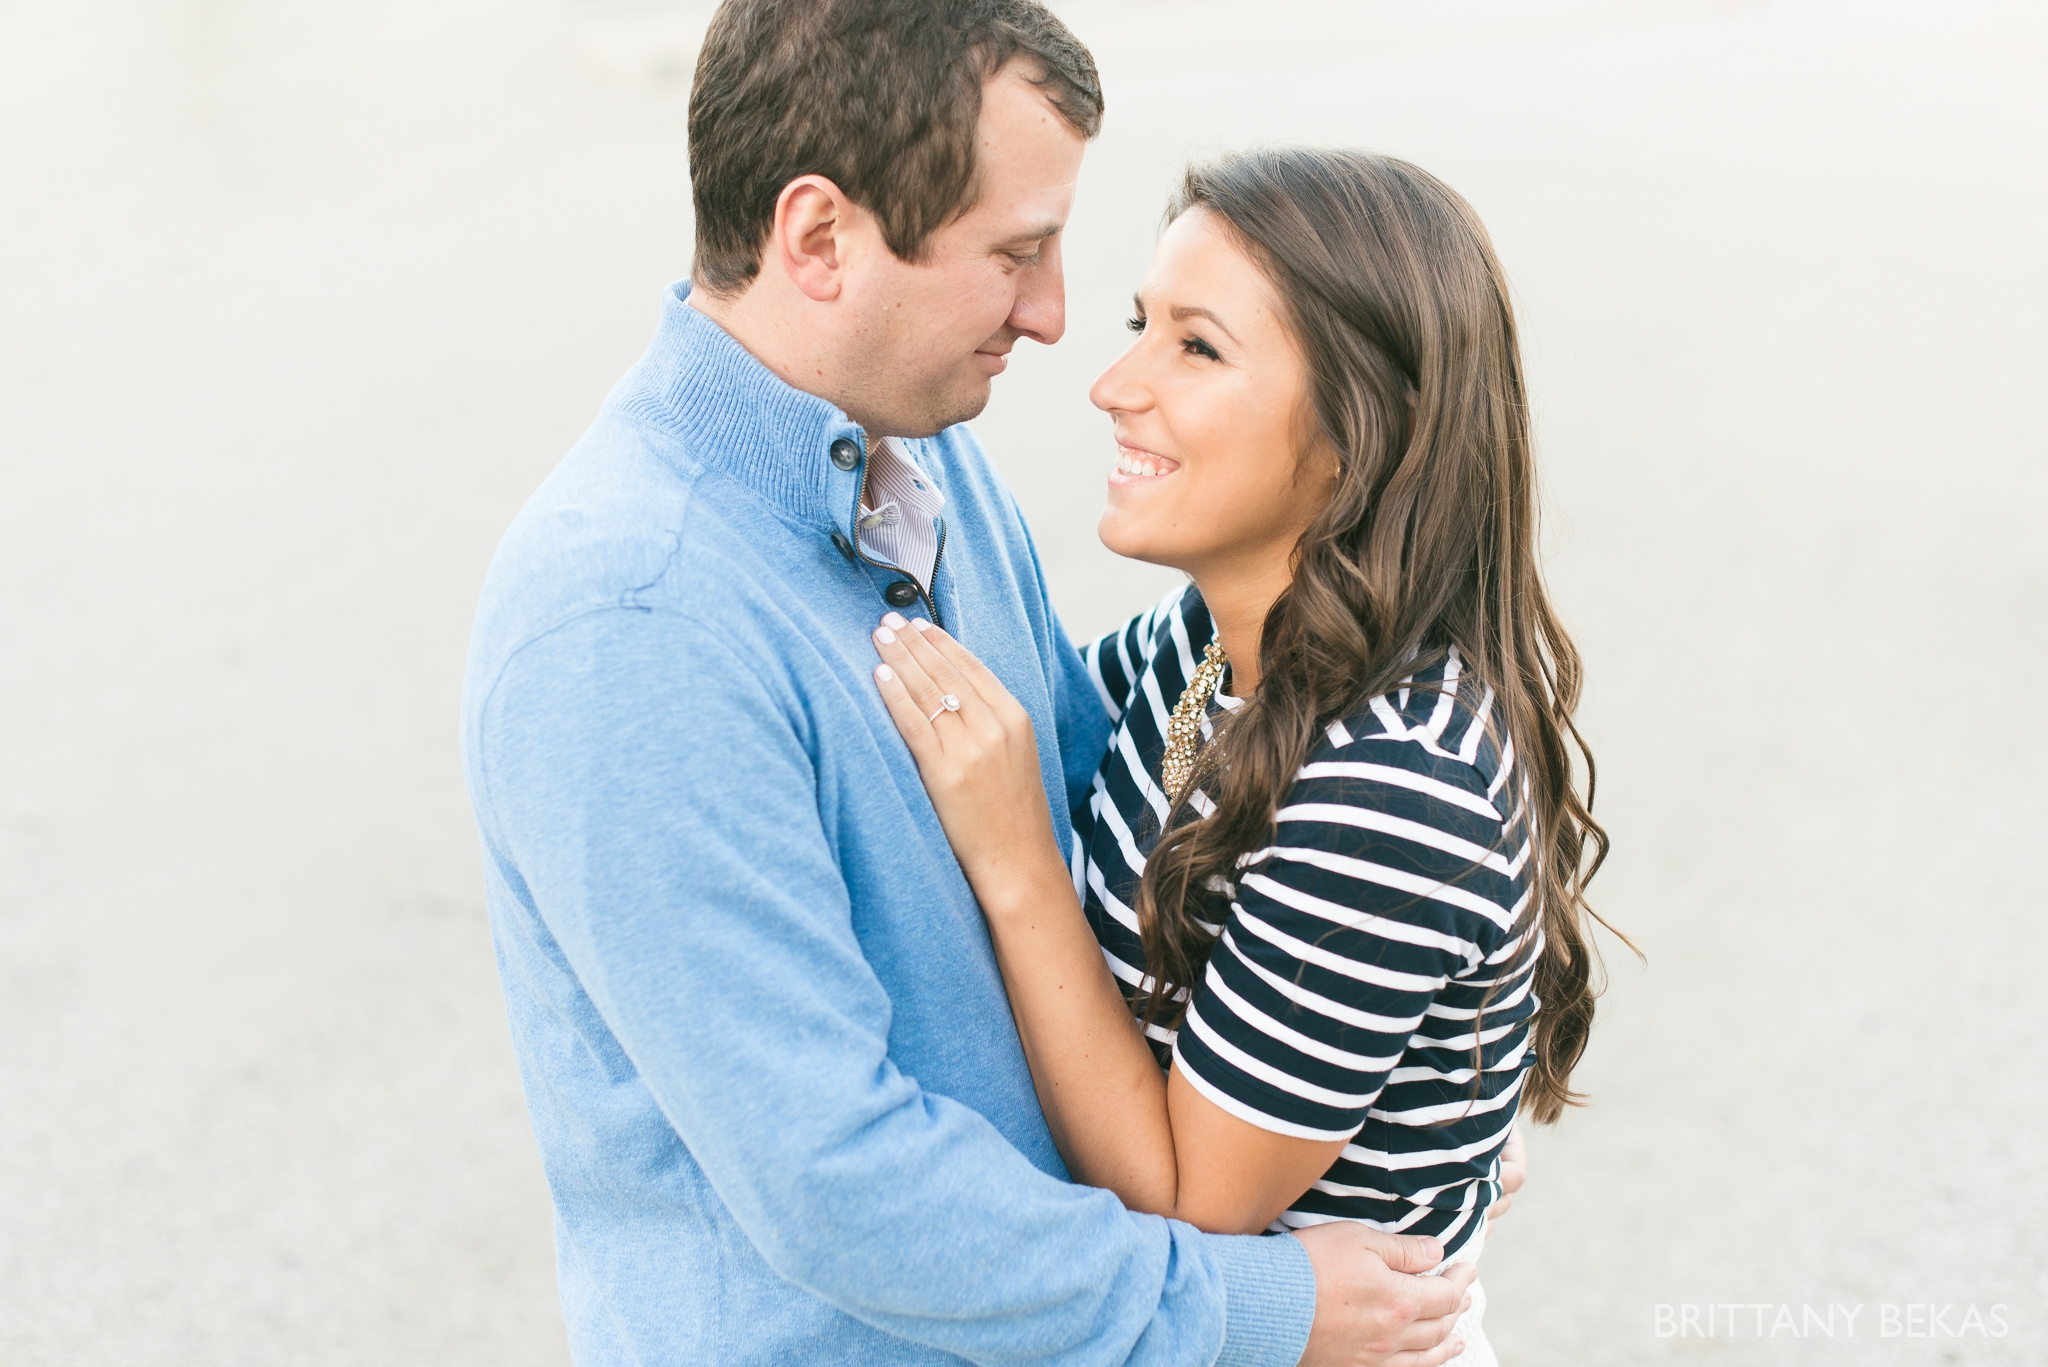 Chicago Engagement Lincoln Park Engagement Photos - Brittany Bekas Photography_0031